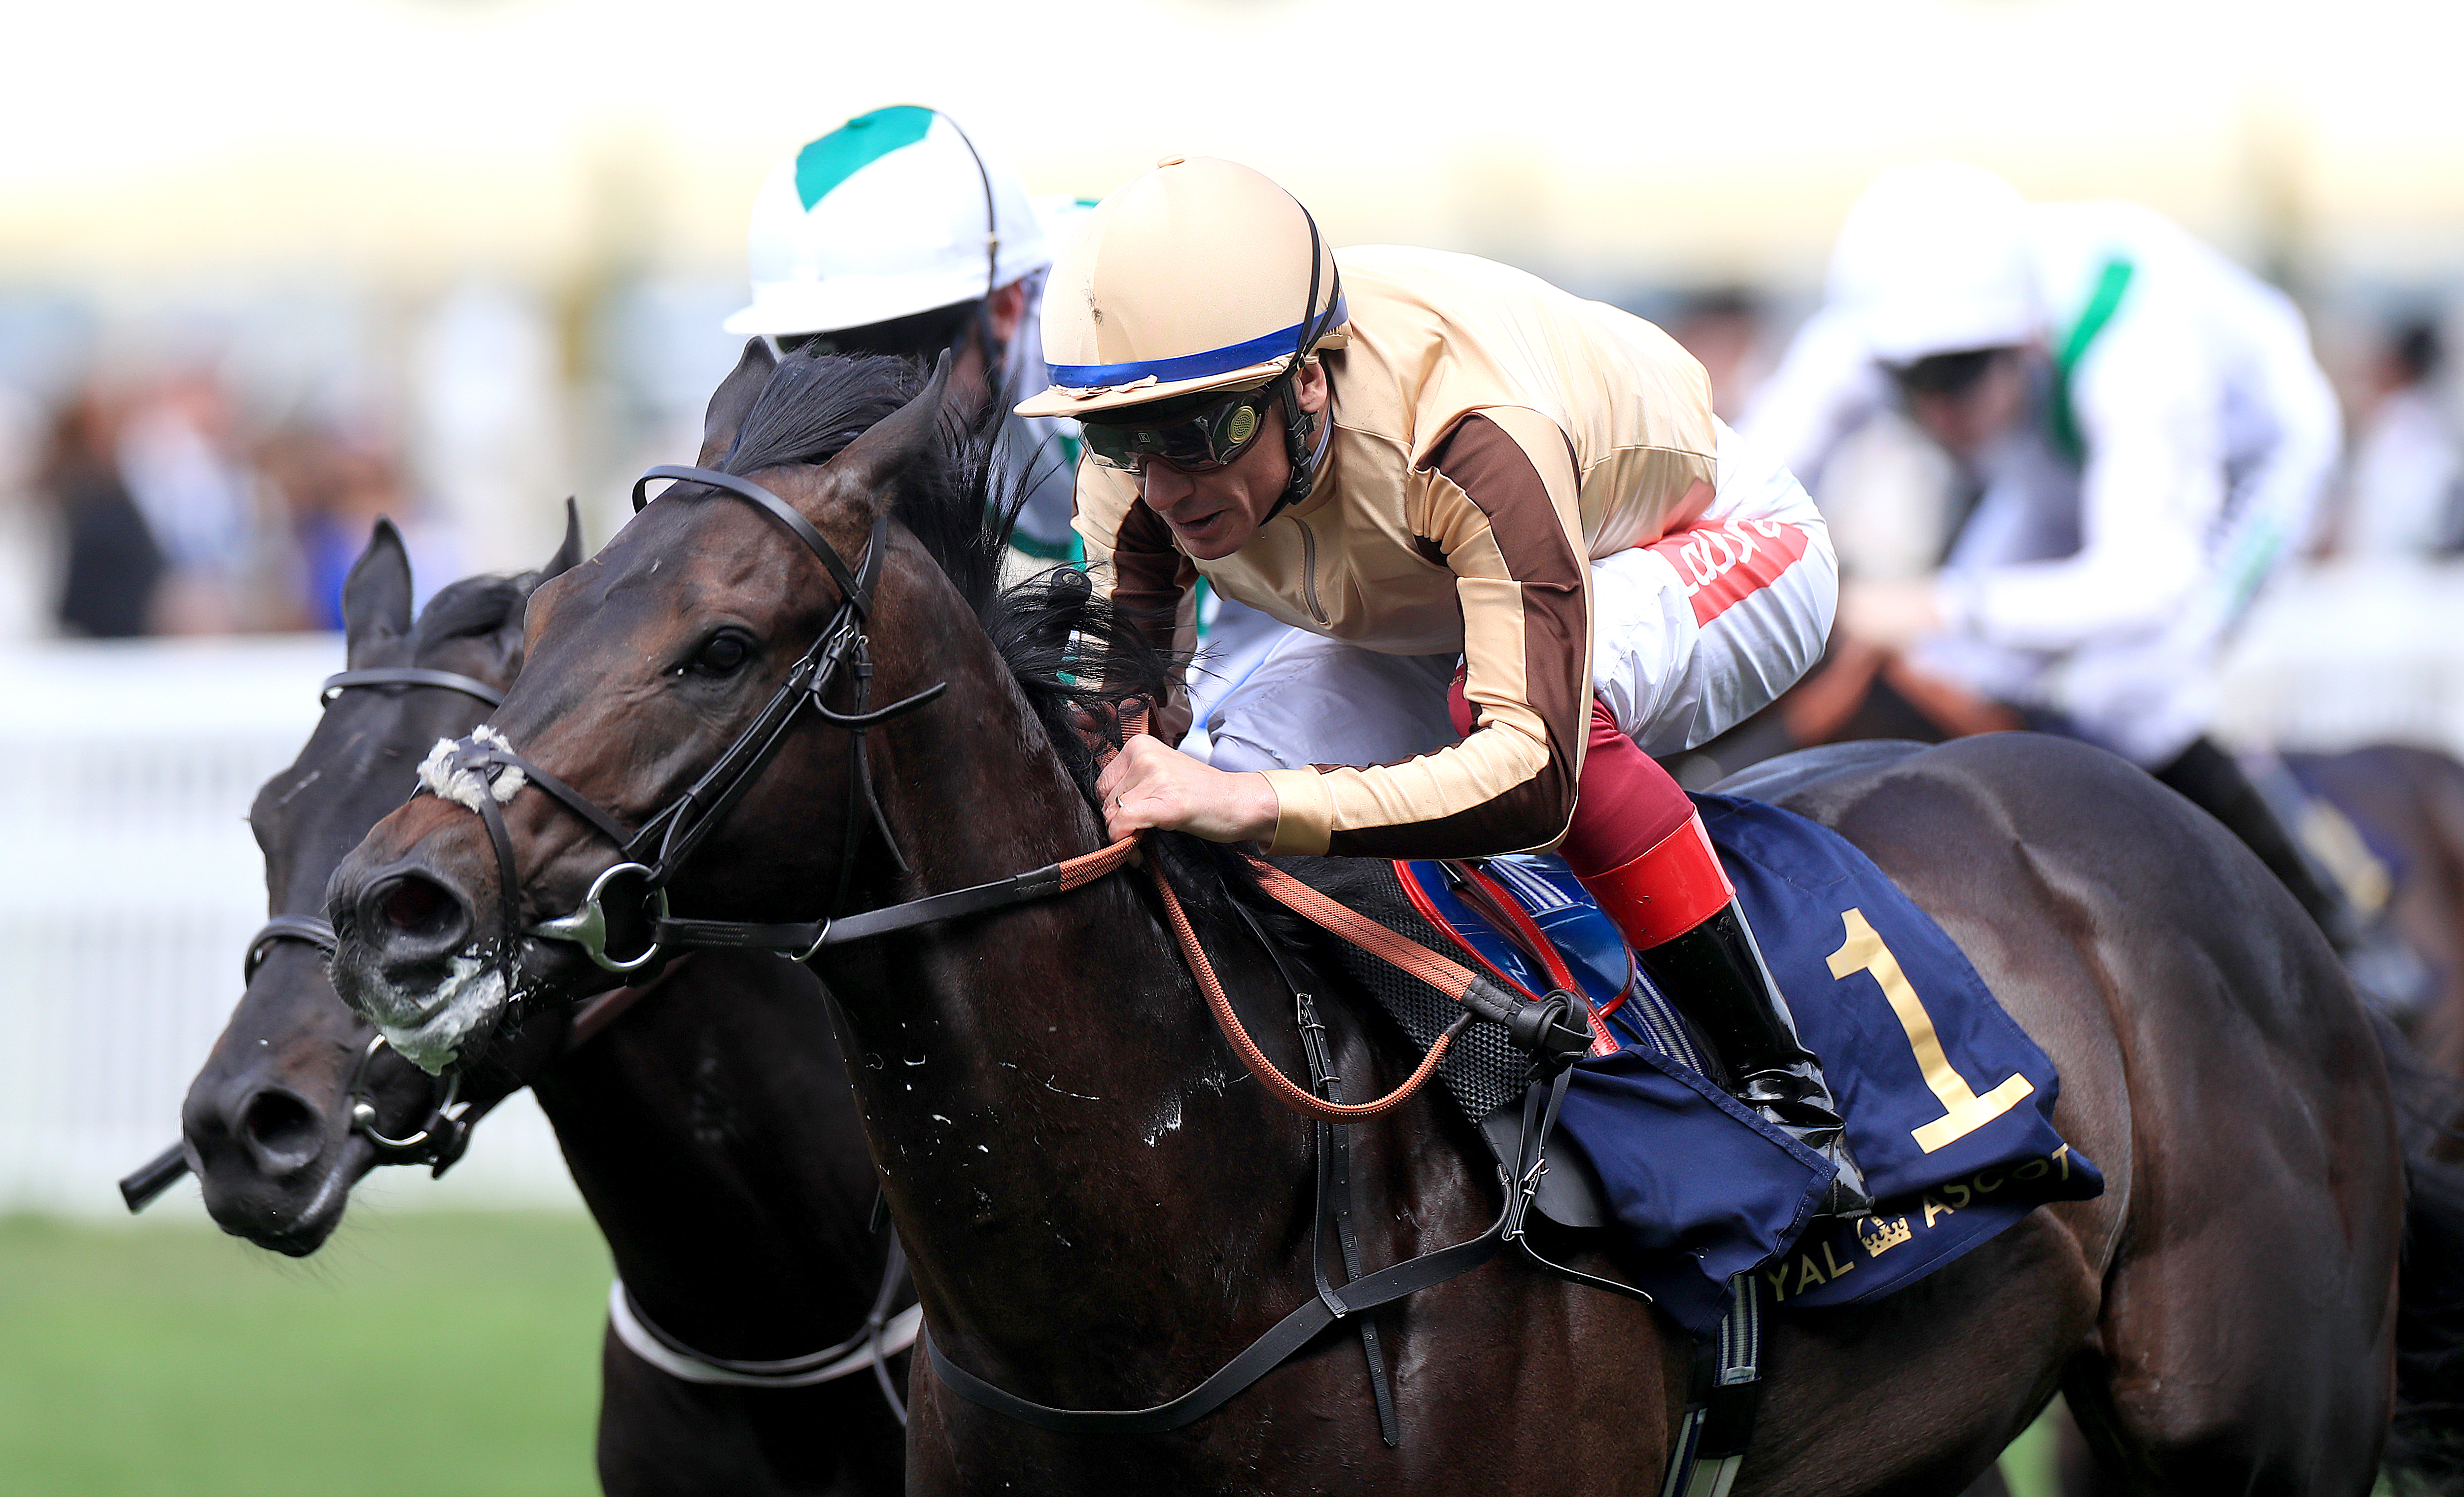 'Ali will be Frankie Dettori's first trip in the Breeders Cup this year